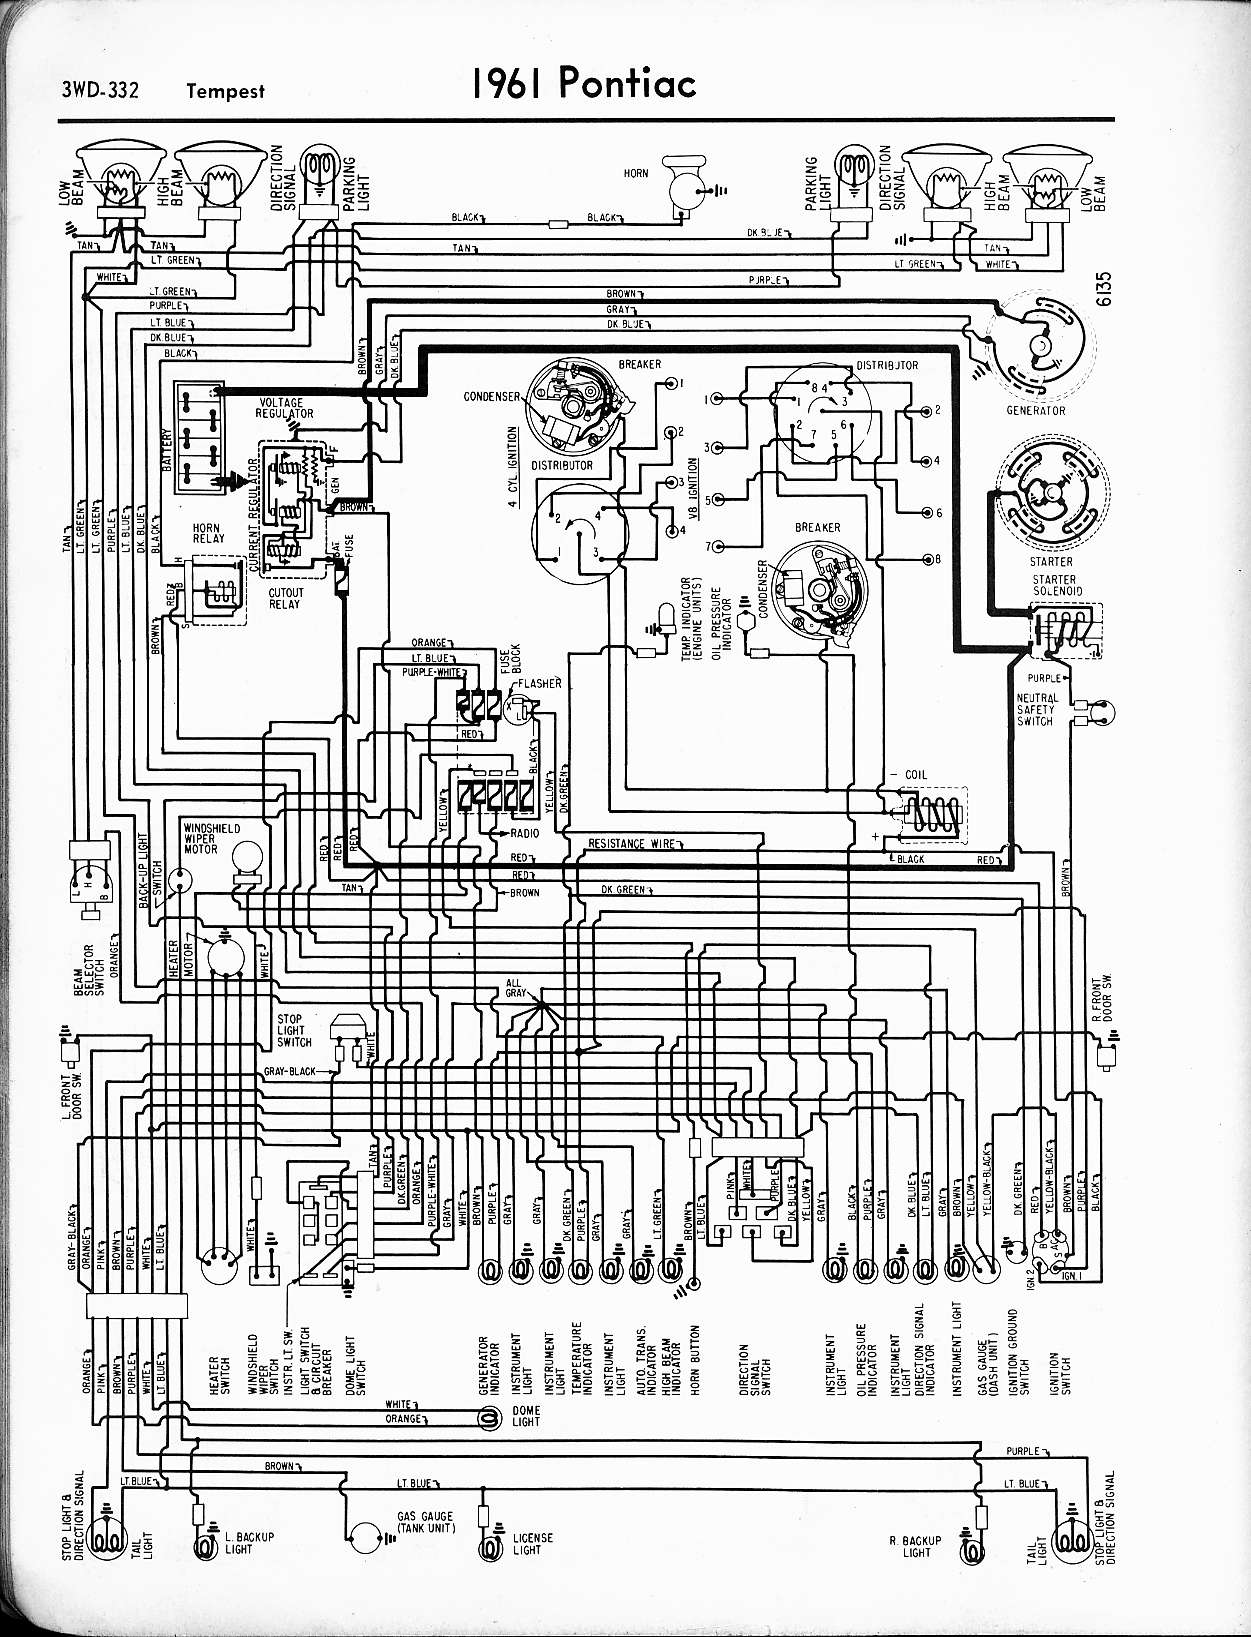 Wiring Diagram For 1969 Chevelle | Wiring Diagram on 71 chevelle interior, 71 chevelle dimensions, 71 chevelle wagon, 71 chevelle 4 door, 71 chevelle front suspension, 71 chevelle rear axle, 71 chevelle exhaust system, 71 chevelle body, 71 chevelle wiring harness, 71 chevelle rear suspension, 71 chevelle parts, 71 chevelle drawings, 71 chevelle malibu, 71 chevelle seats, 71 chevelle pro street, 71 chevelle stripes, 71 chevelle alternator wiring, 71 chevelle engine, 71 chevelle ss, 71 chevelle super sport,